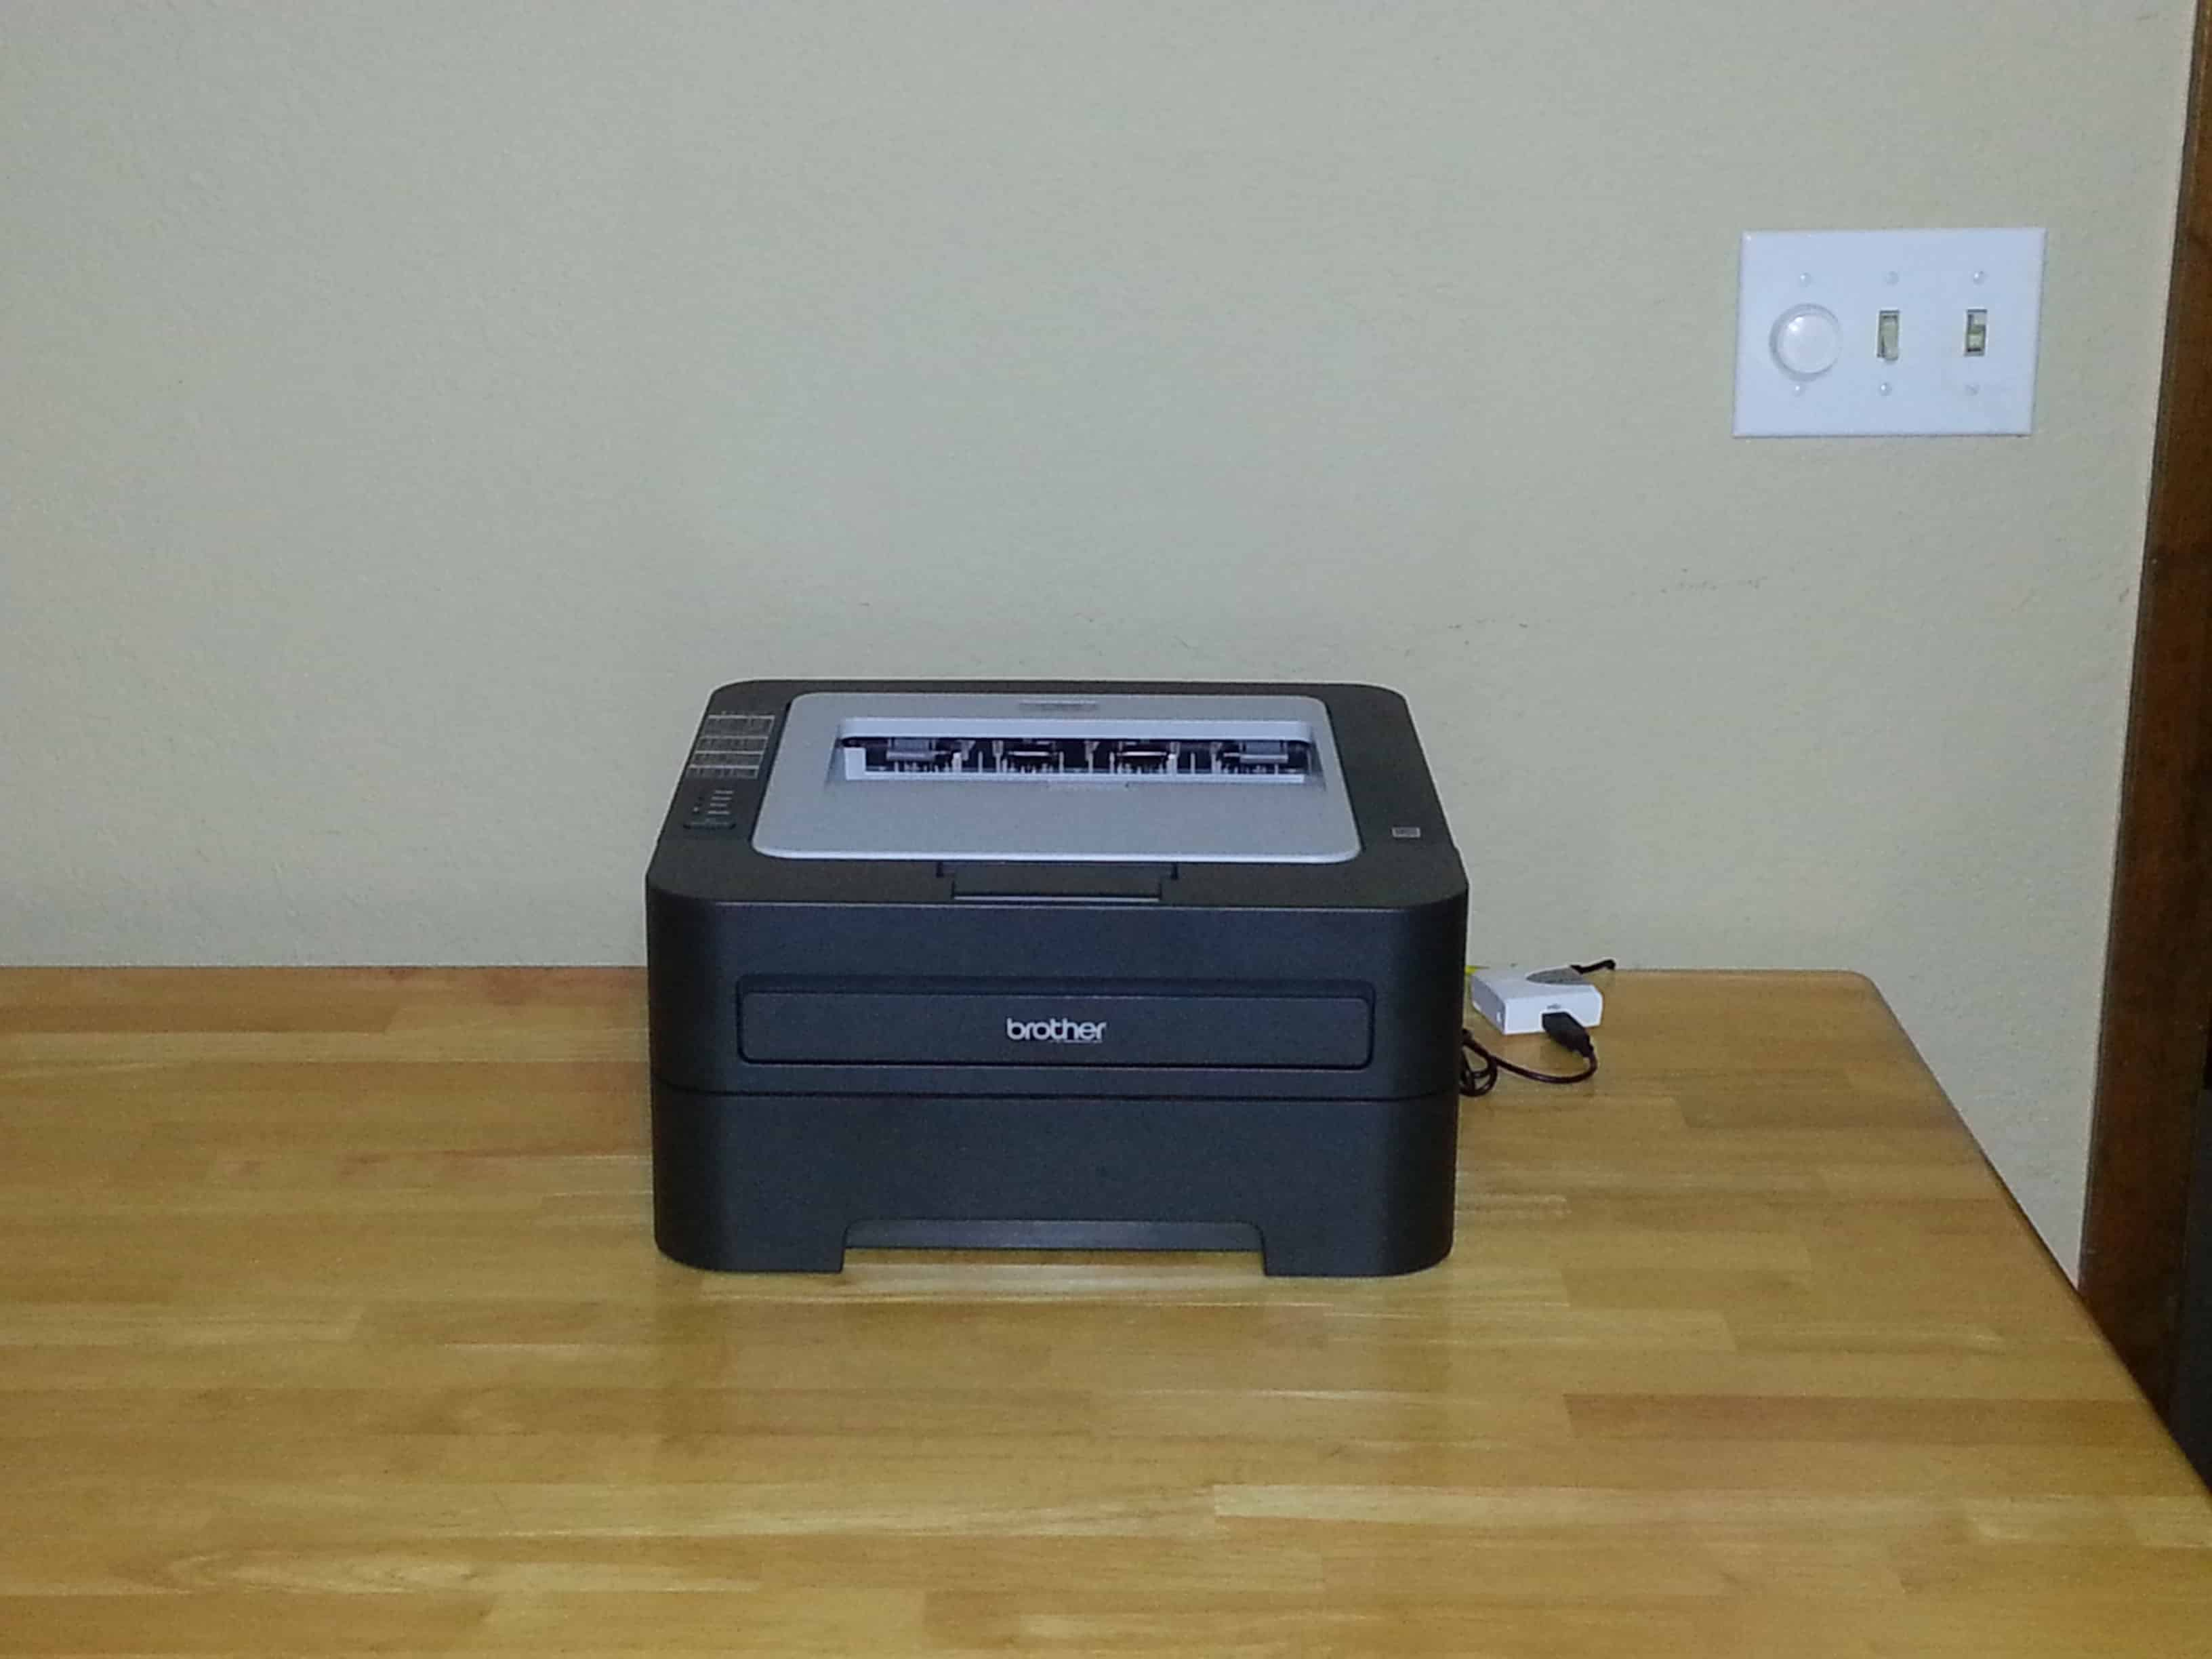 My Network Cupboard: Adding a Networked Printer